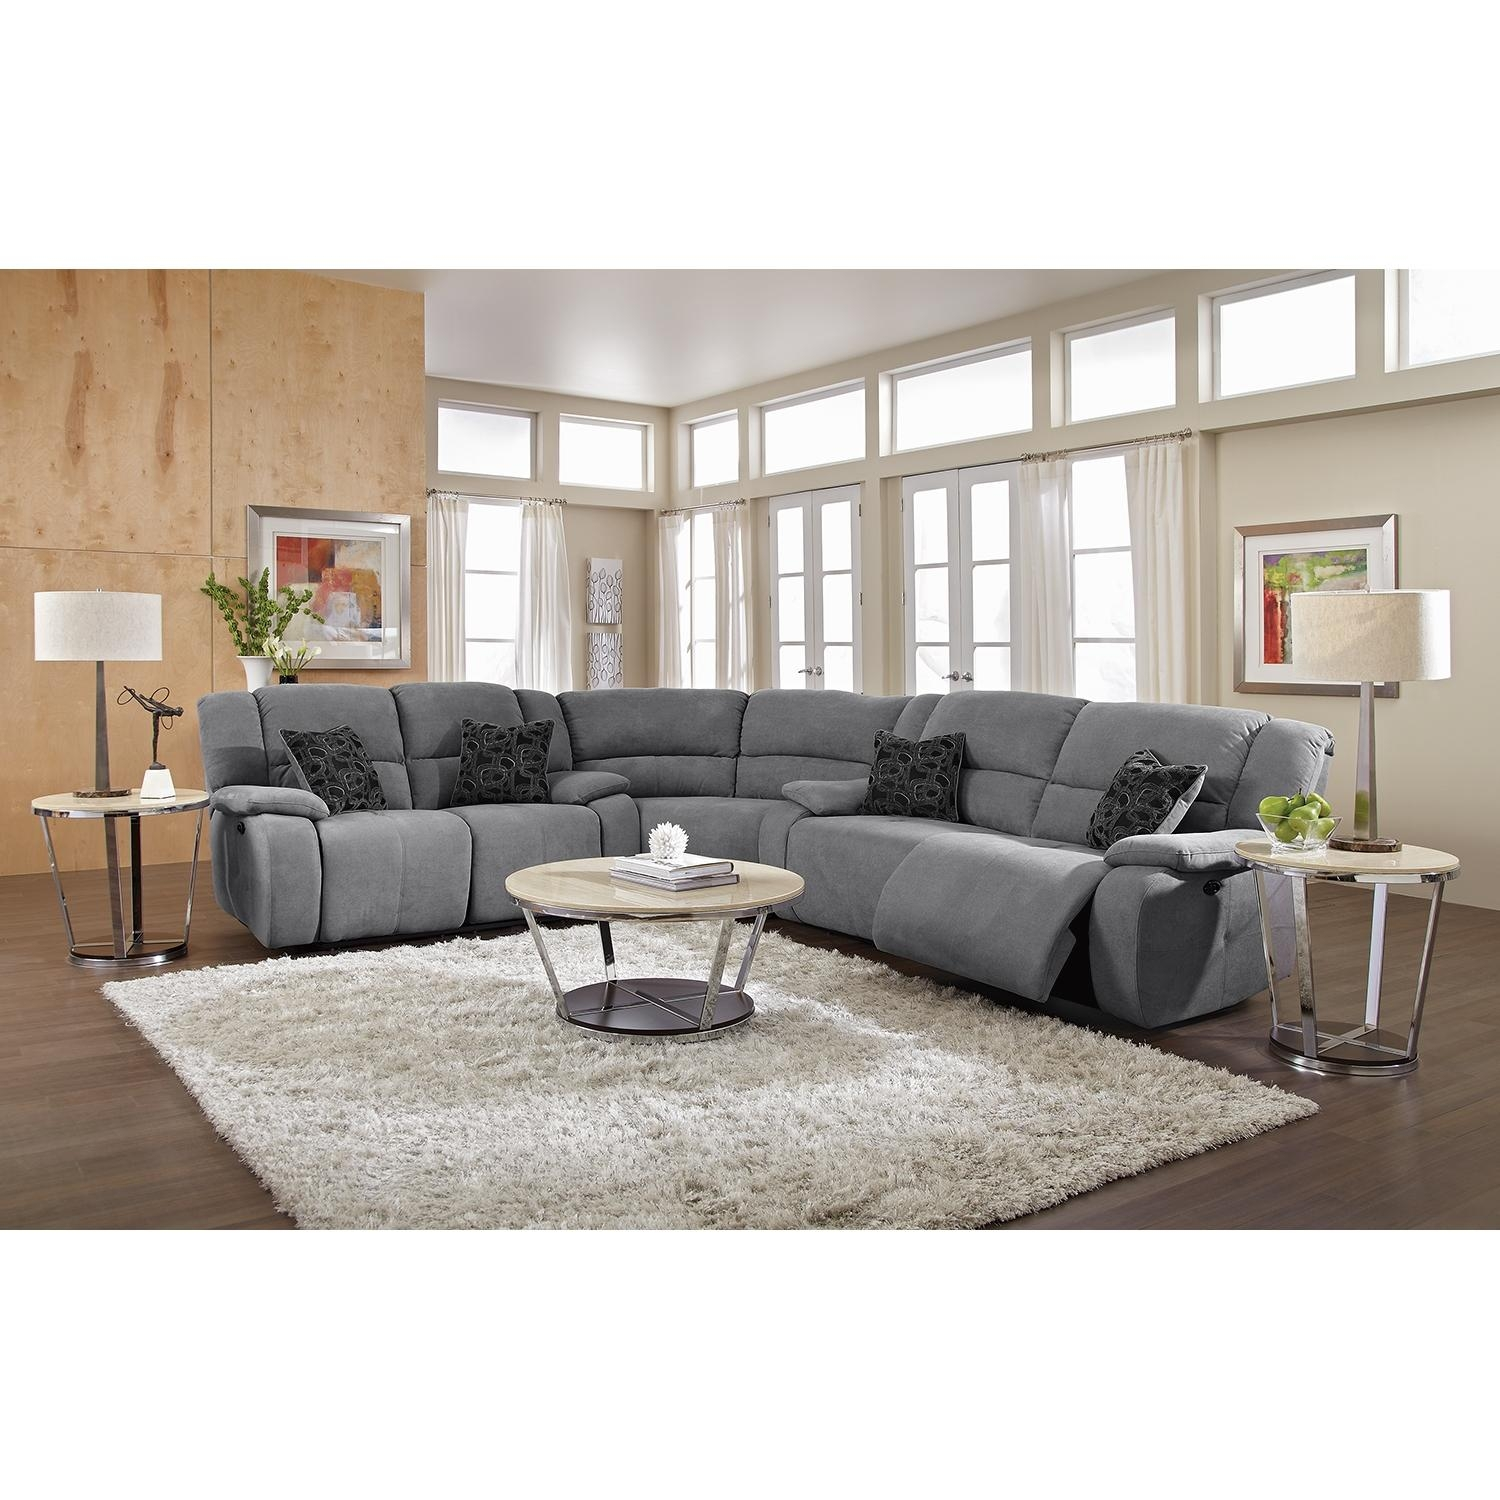 Furniture: Lazy Boy Sectional | Sectional Couches With Recliners With Sleeper Recliner Sectional (Image 7 of 20)